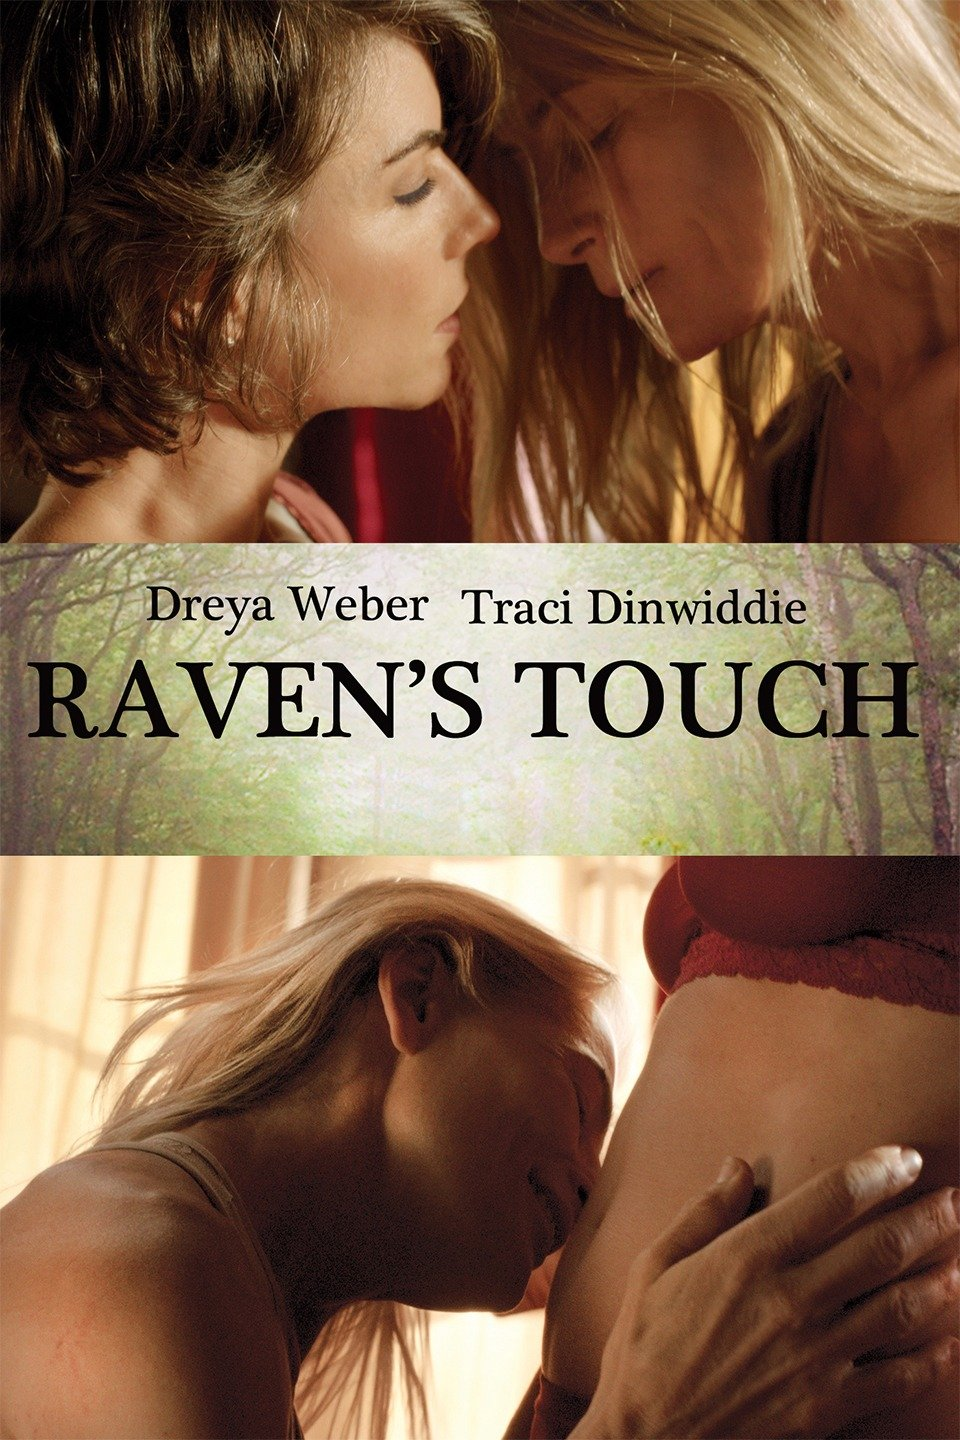 18+ Raven's Touch (2015) Unrated 720p BluRay x264 Full Movie